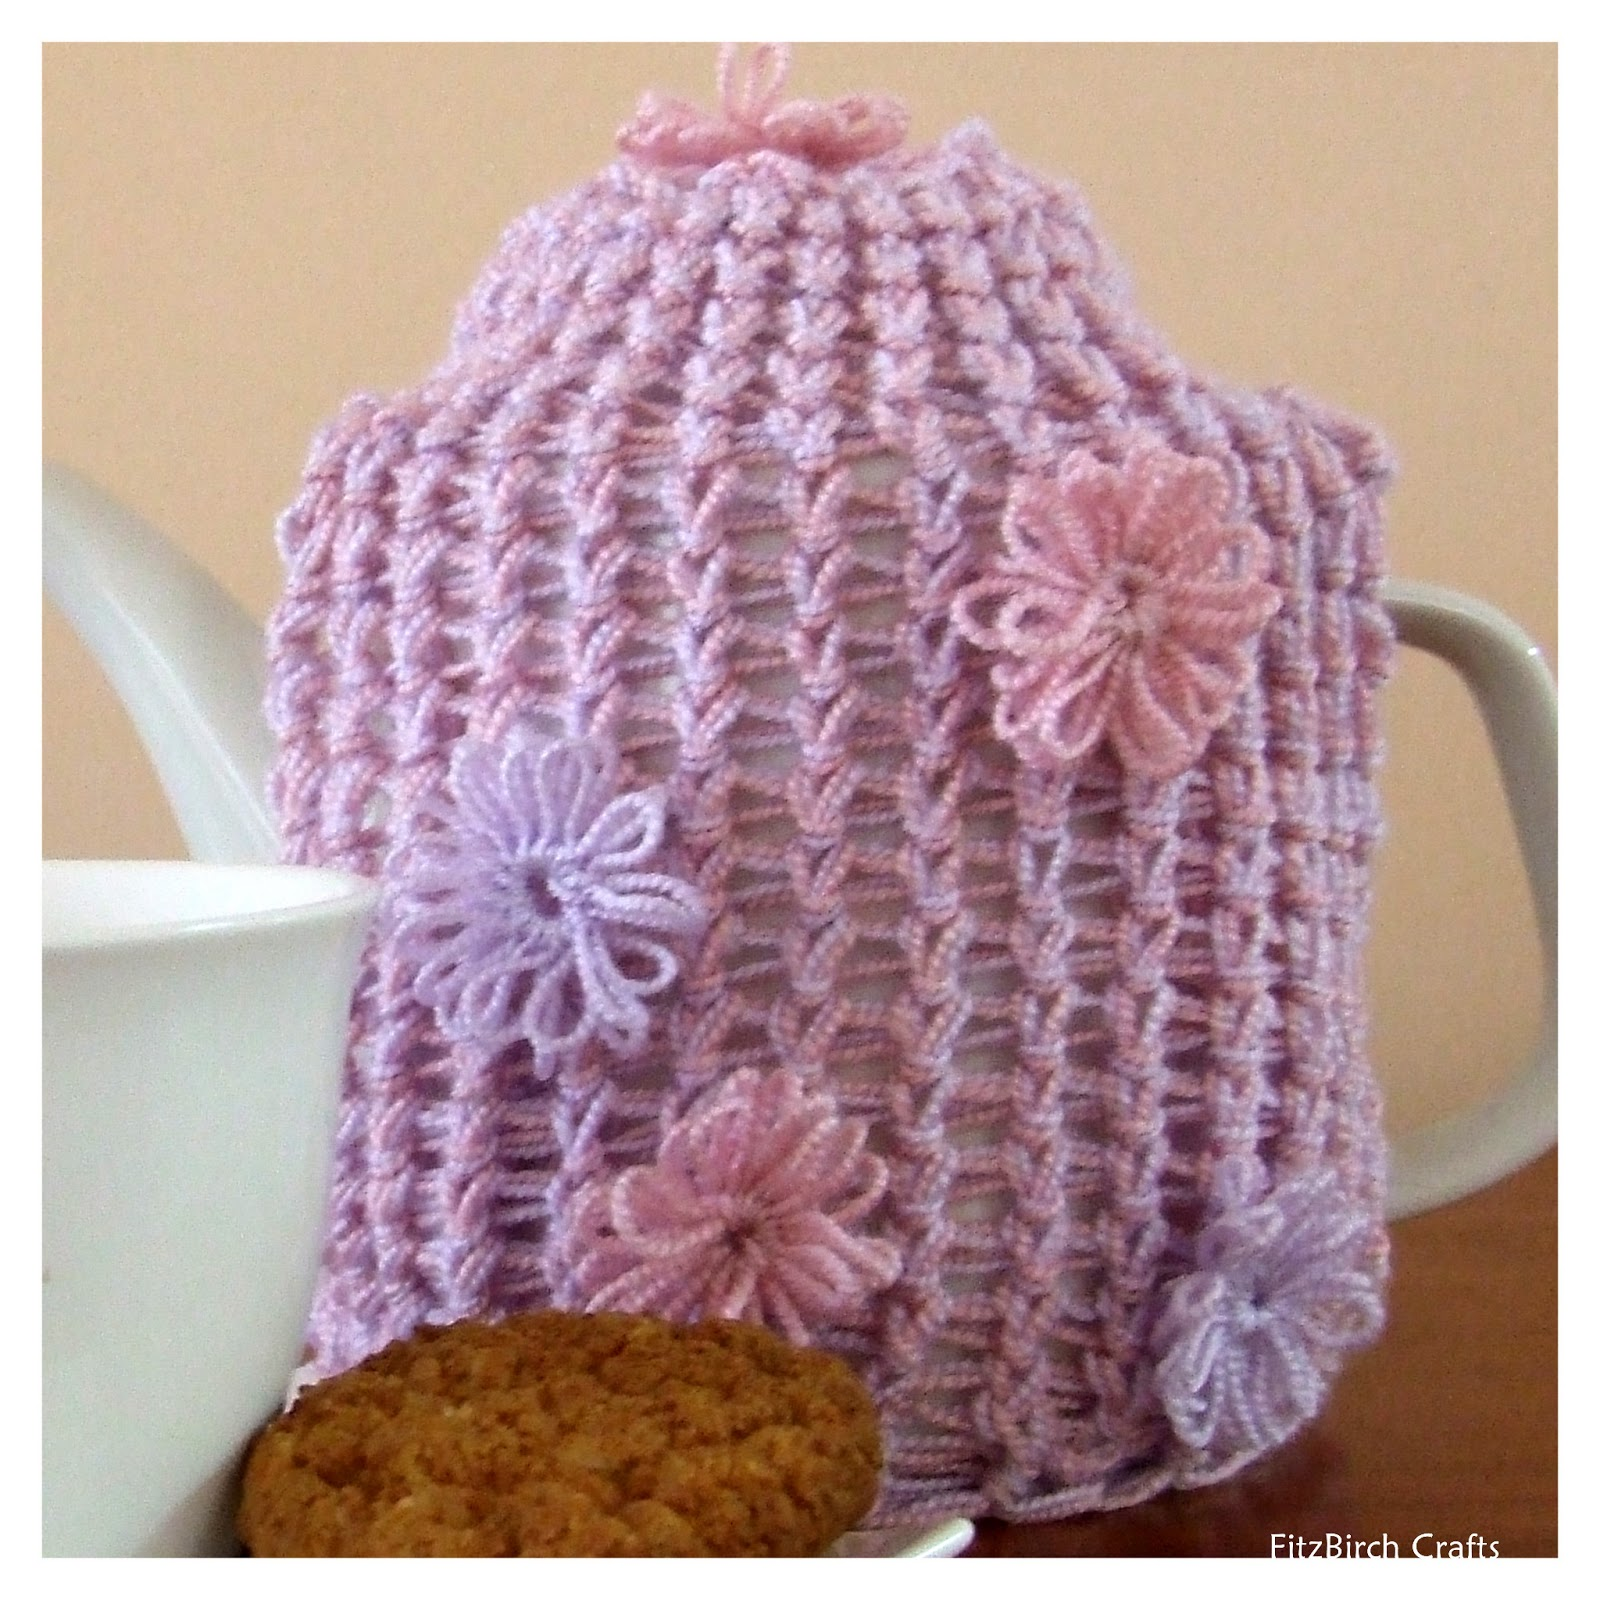 Loom Knitting Free Patterns : Fitzbirch crafts loom knit tea cosy